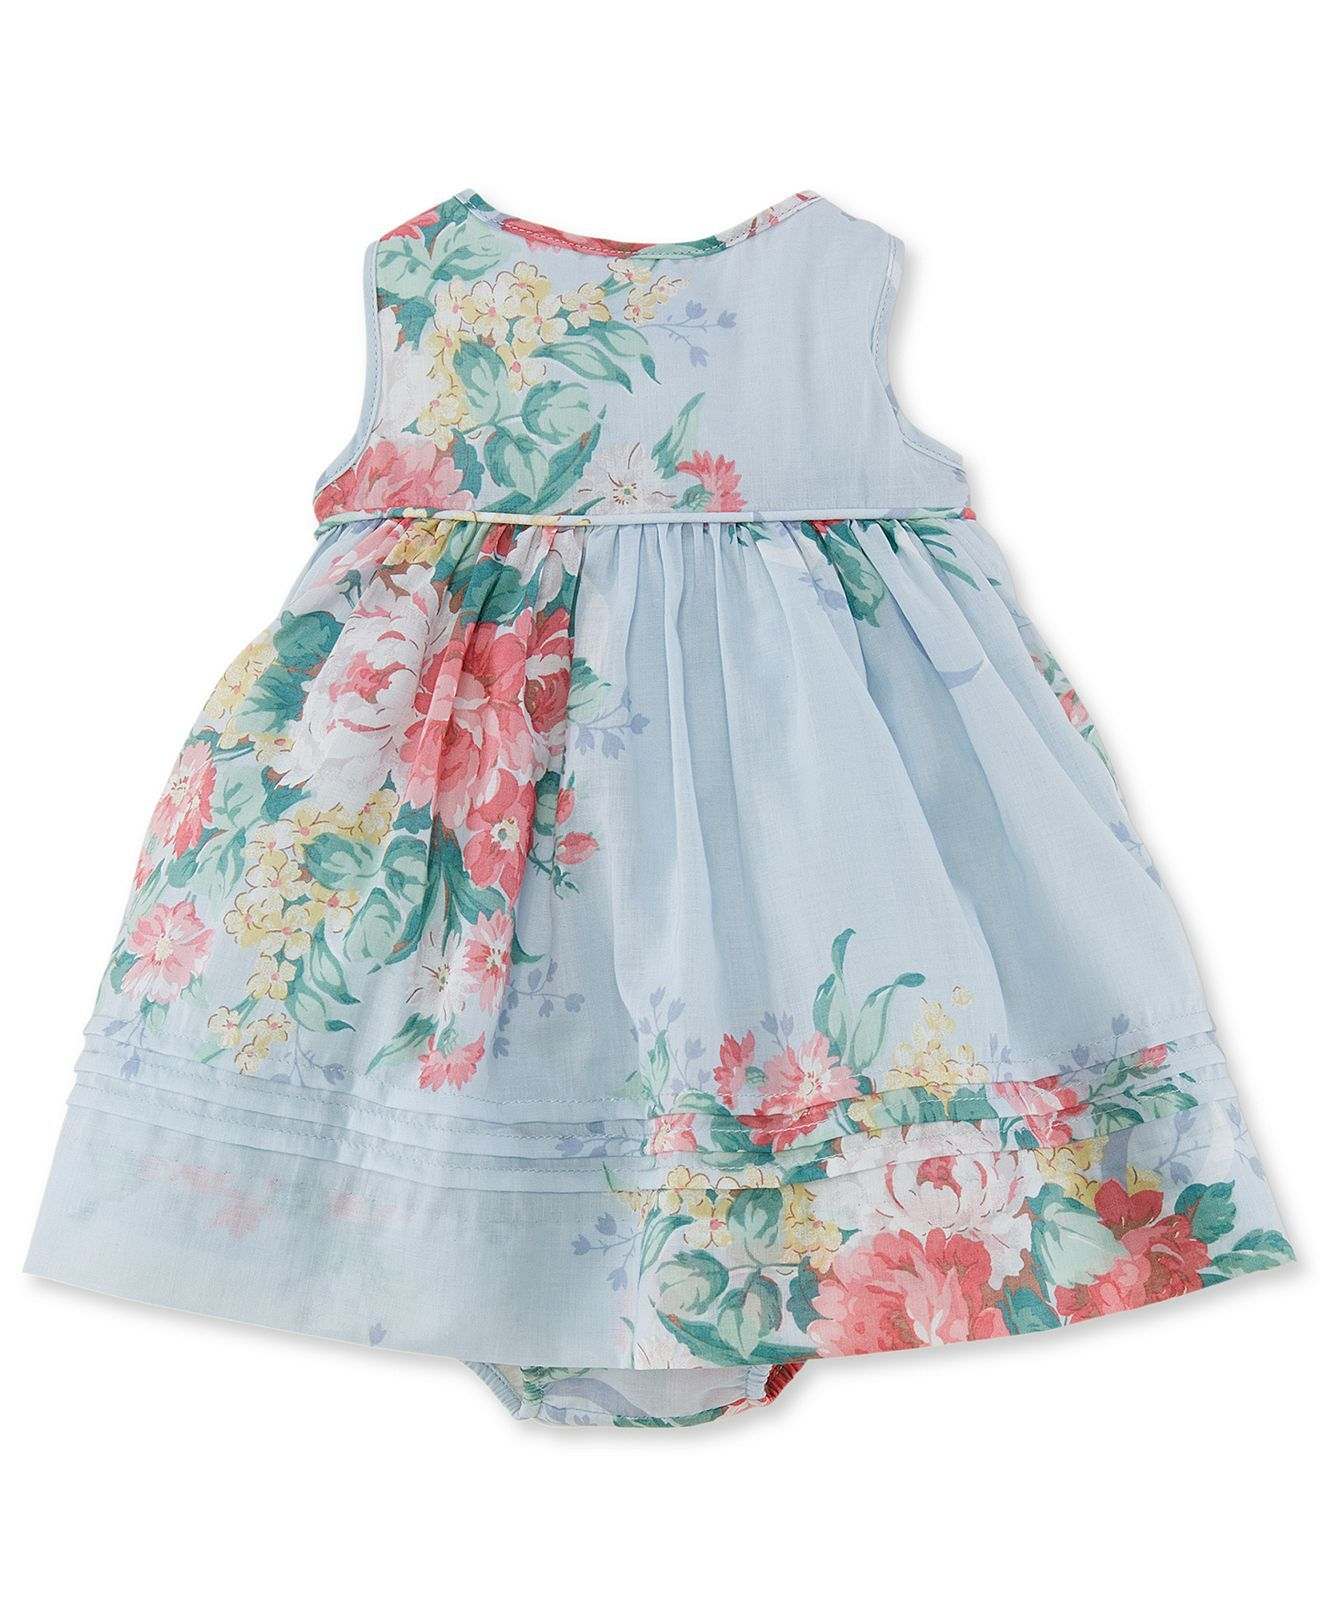 1a55cab4ff9 Ralph Lauren Baby Girls  Floral Dress - Kids - Macy s